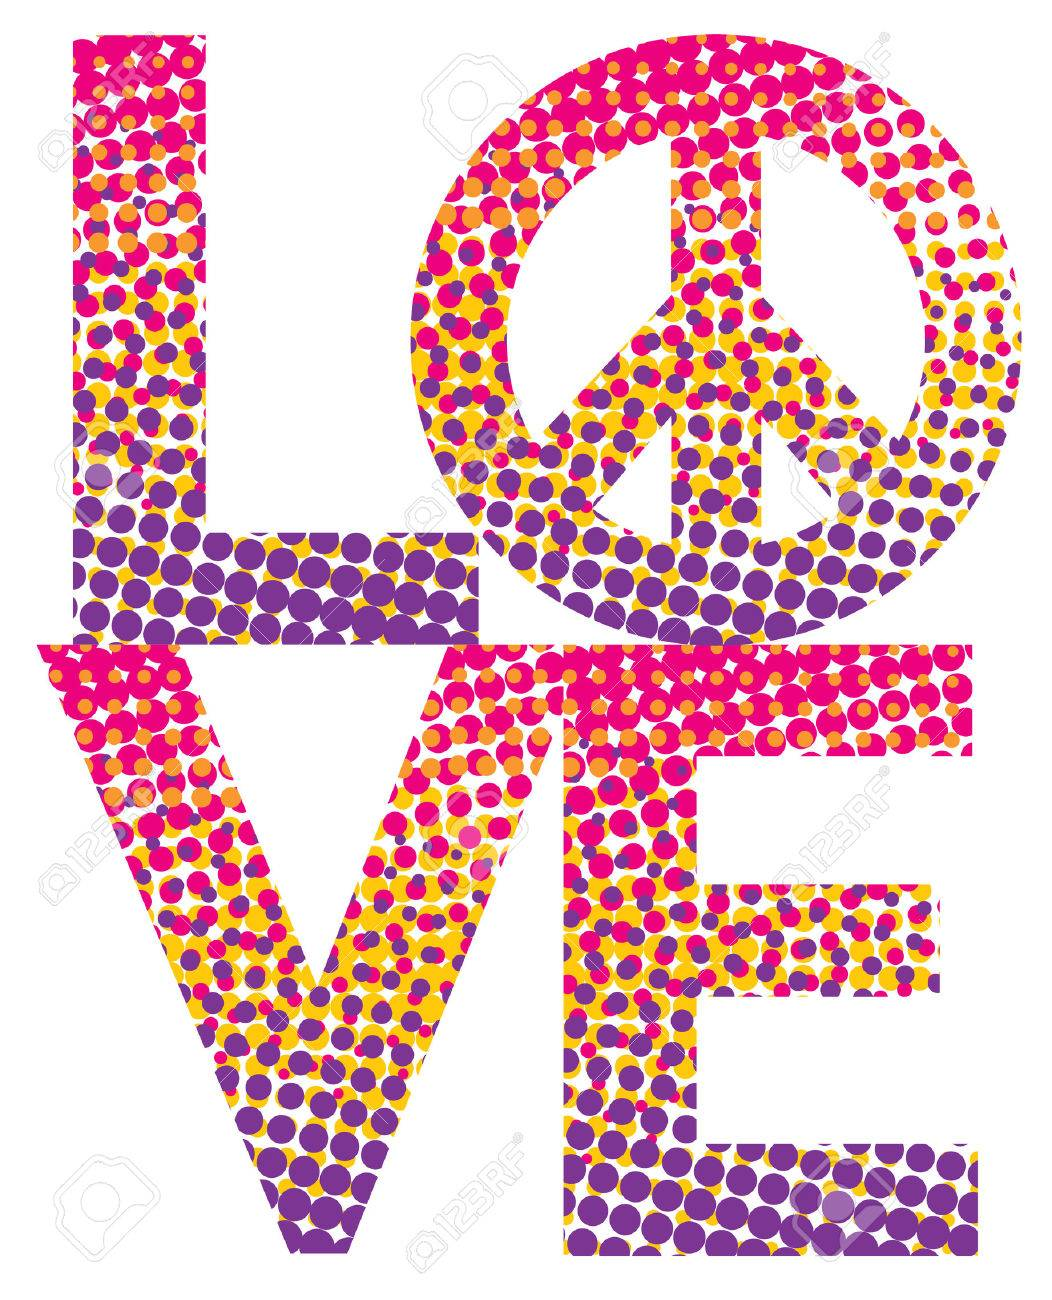 Love With A Peace Symbol In A Colorful Haltone Dot Pattern Royalty